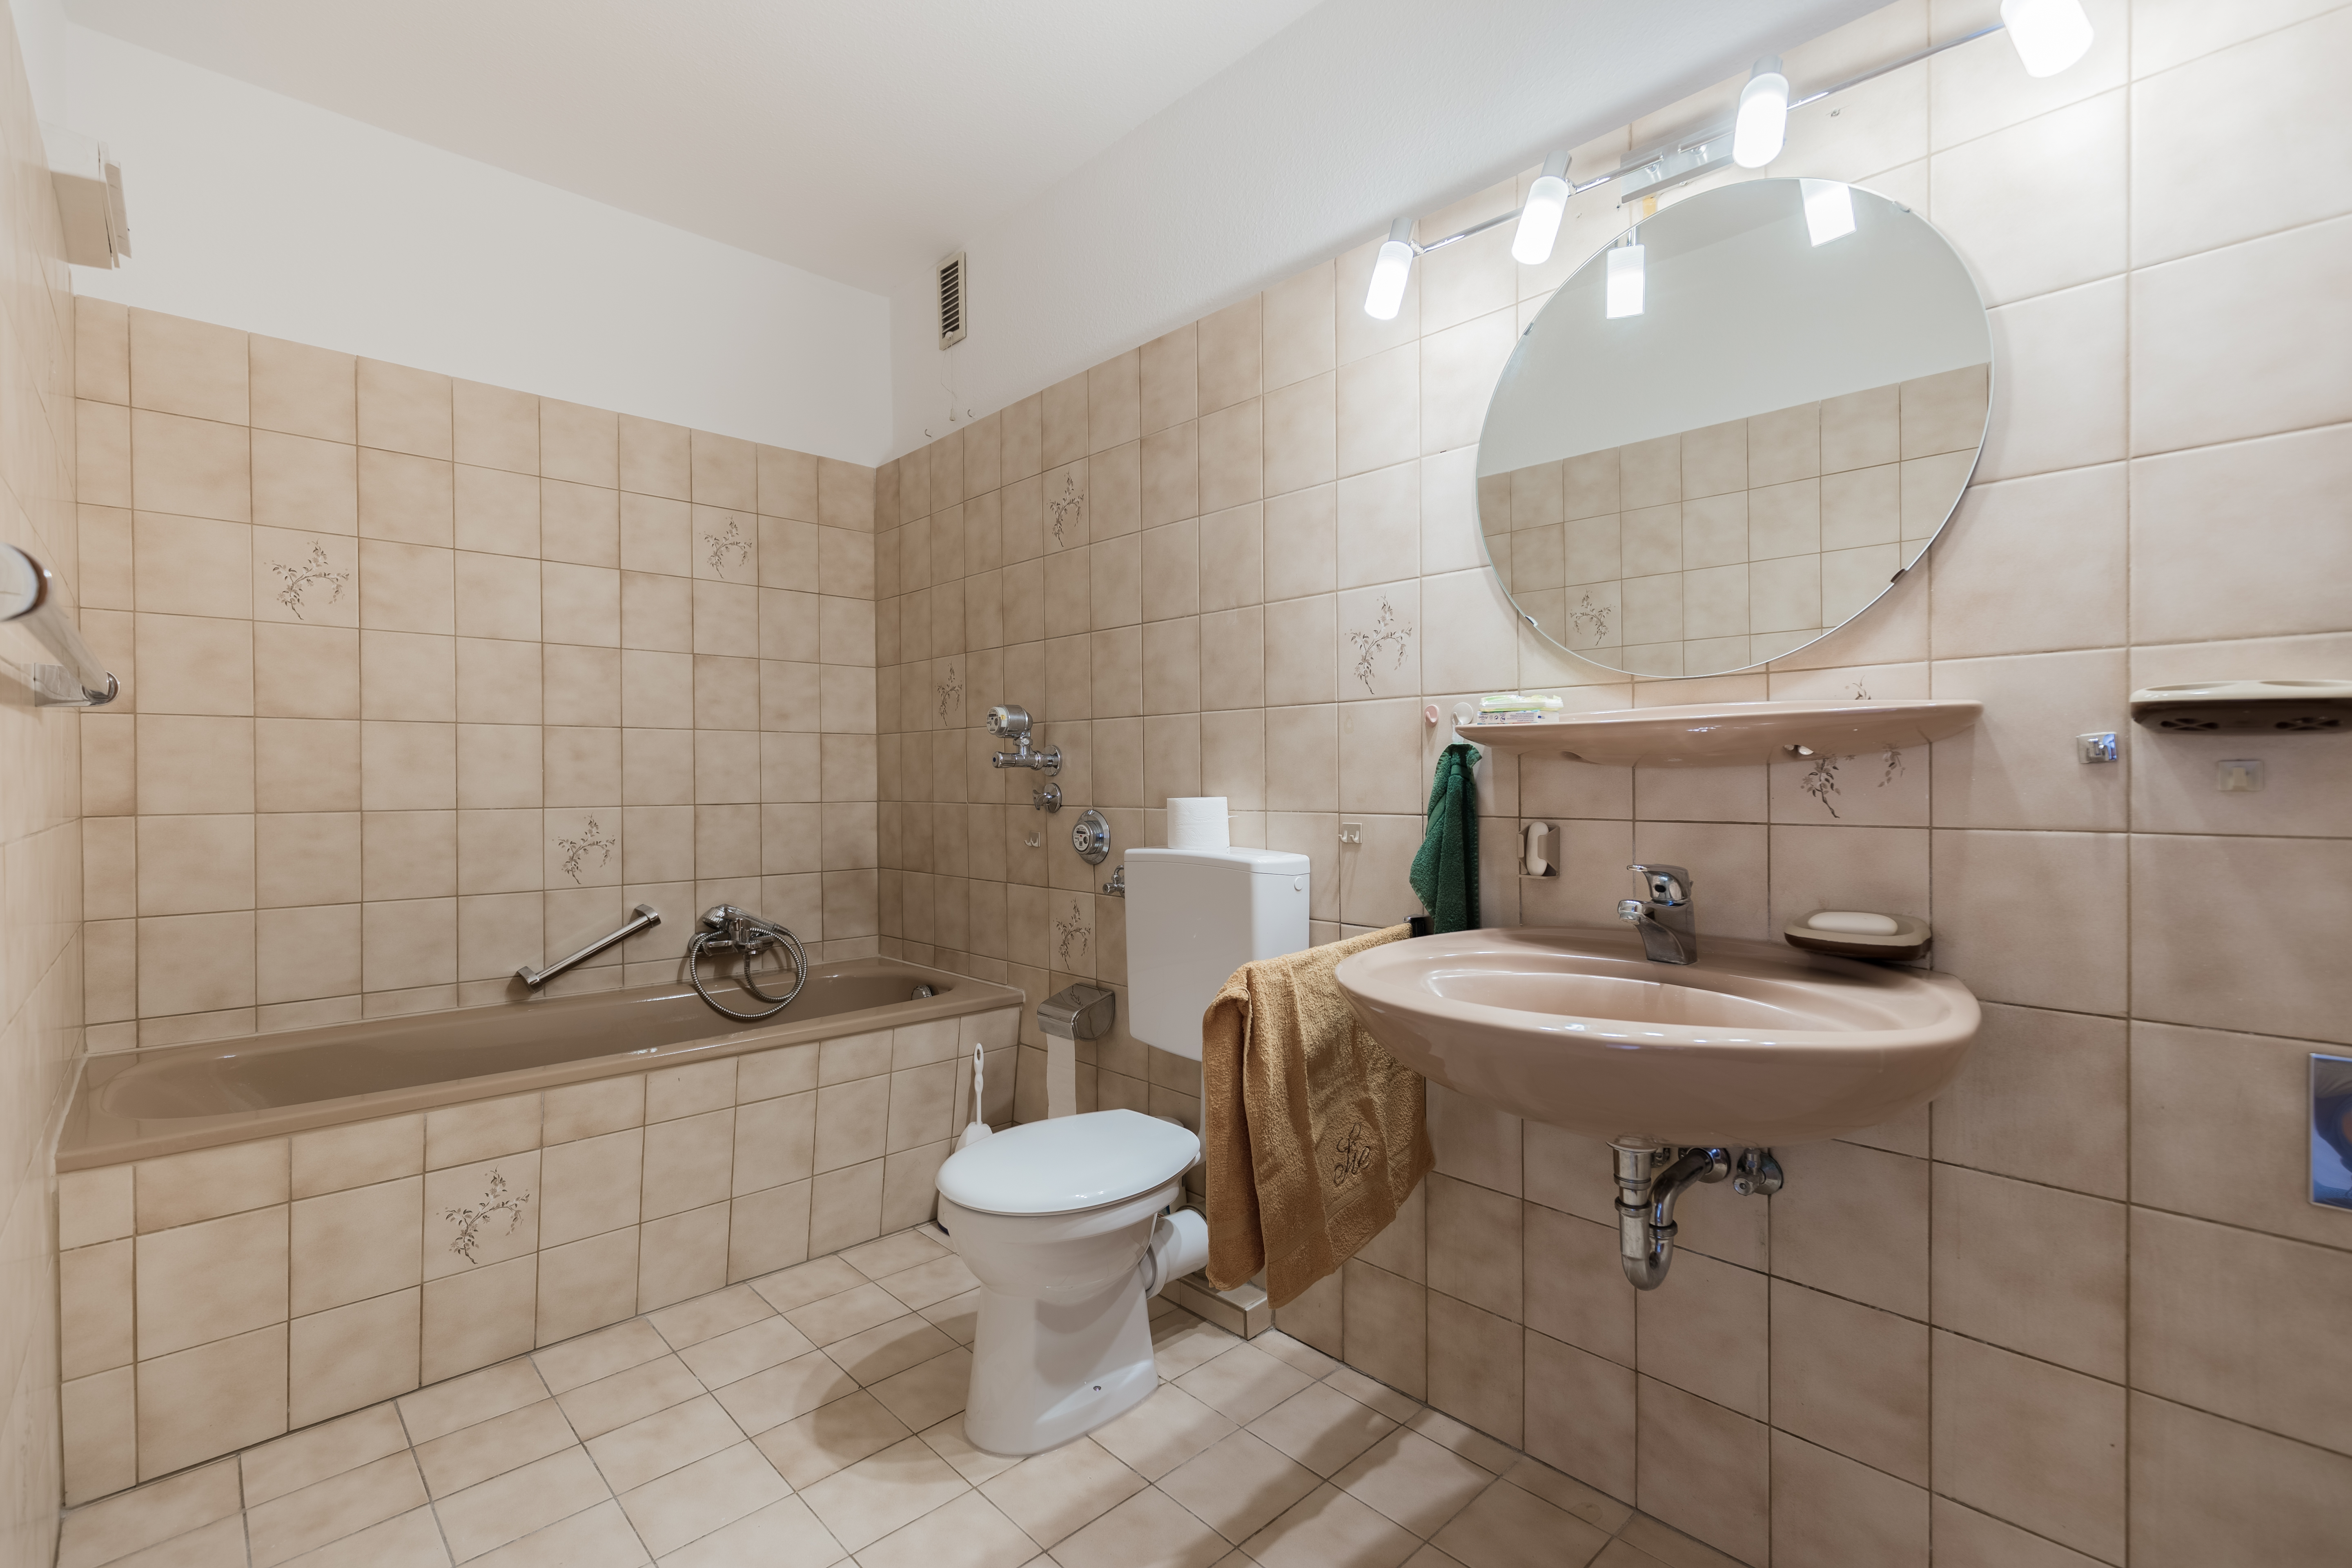 How to Install Bathroom Tile in Corners | Home Guides | SF Gate